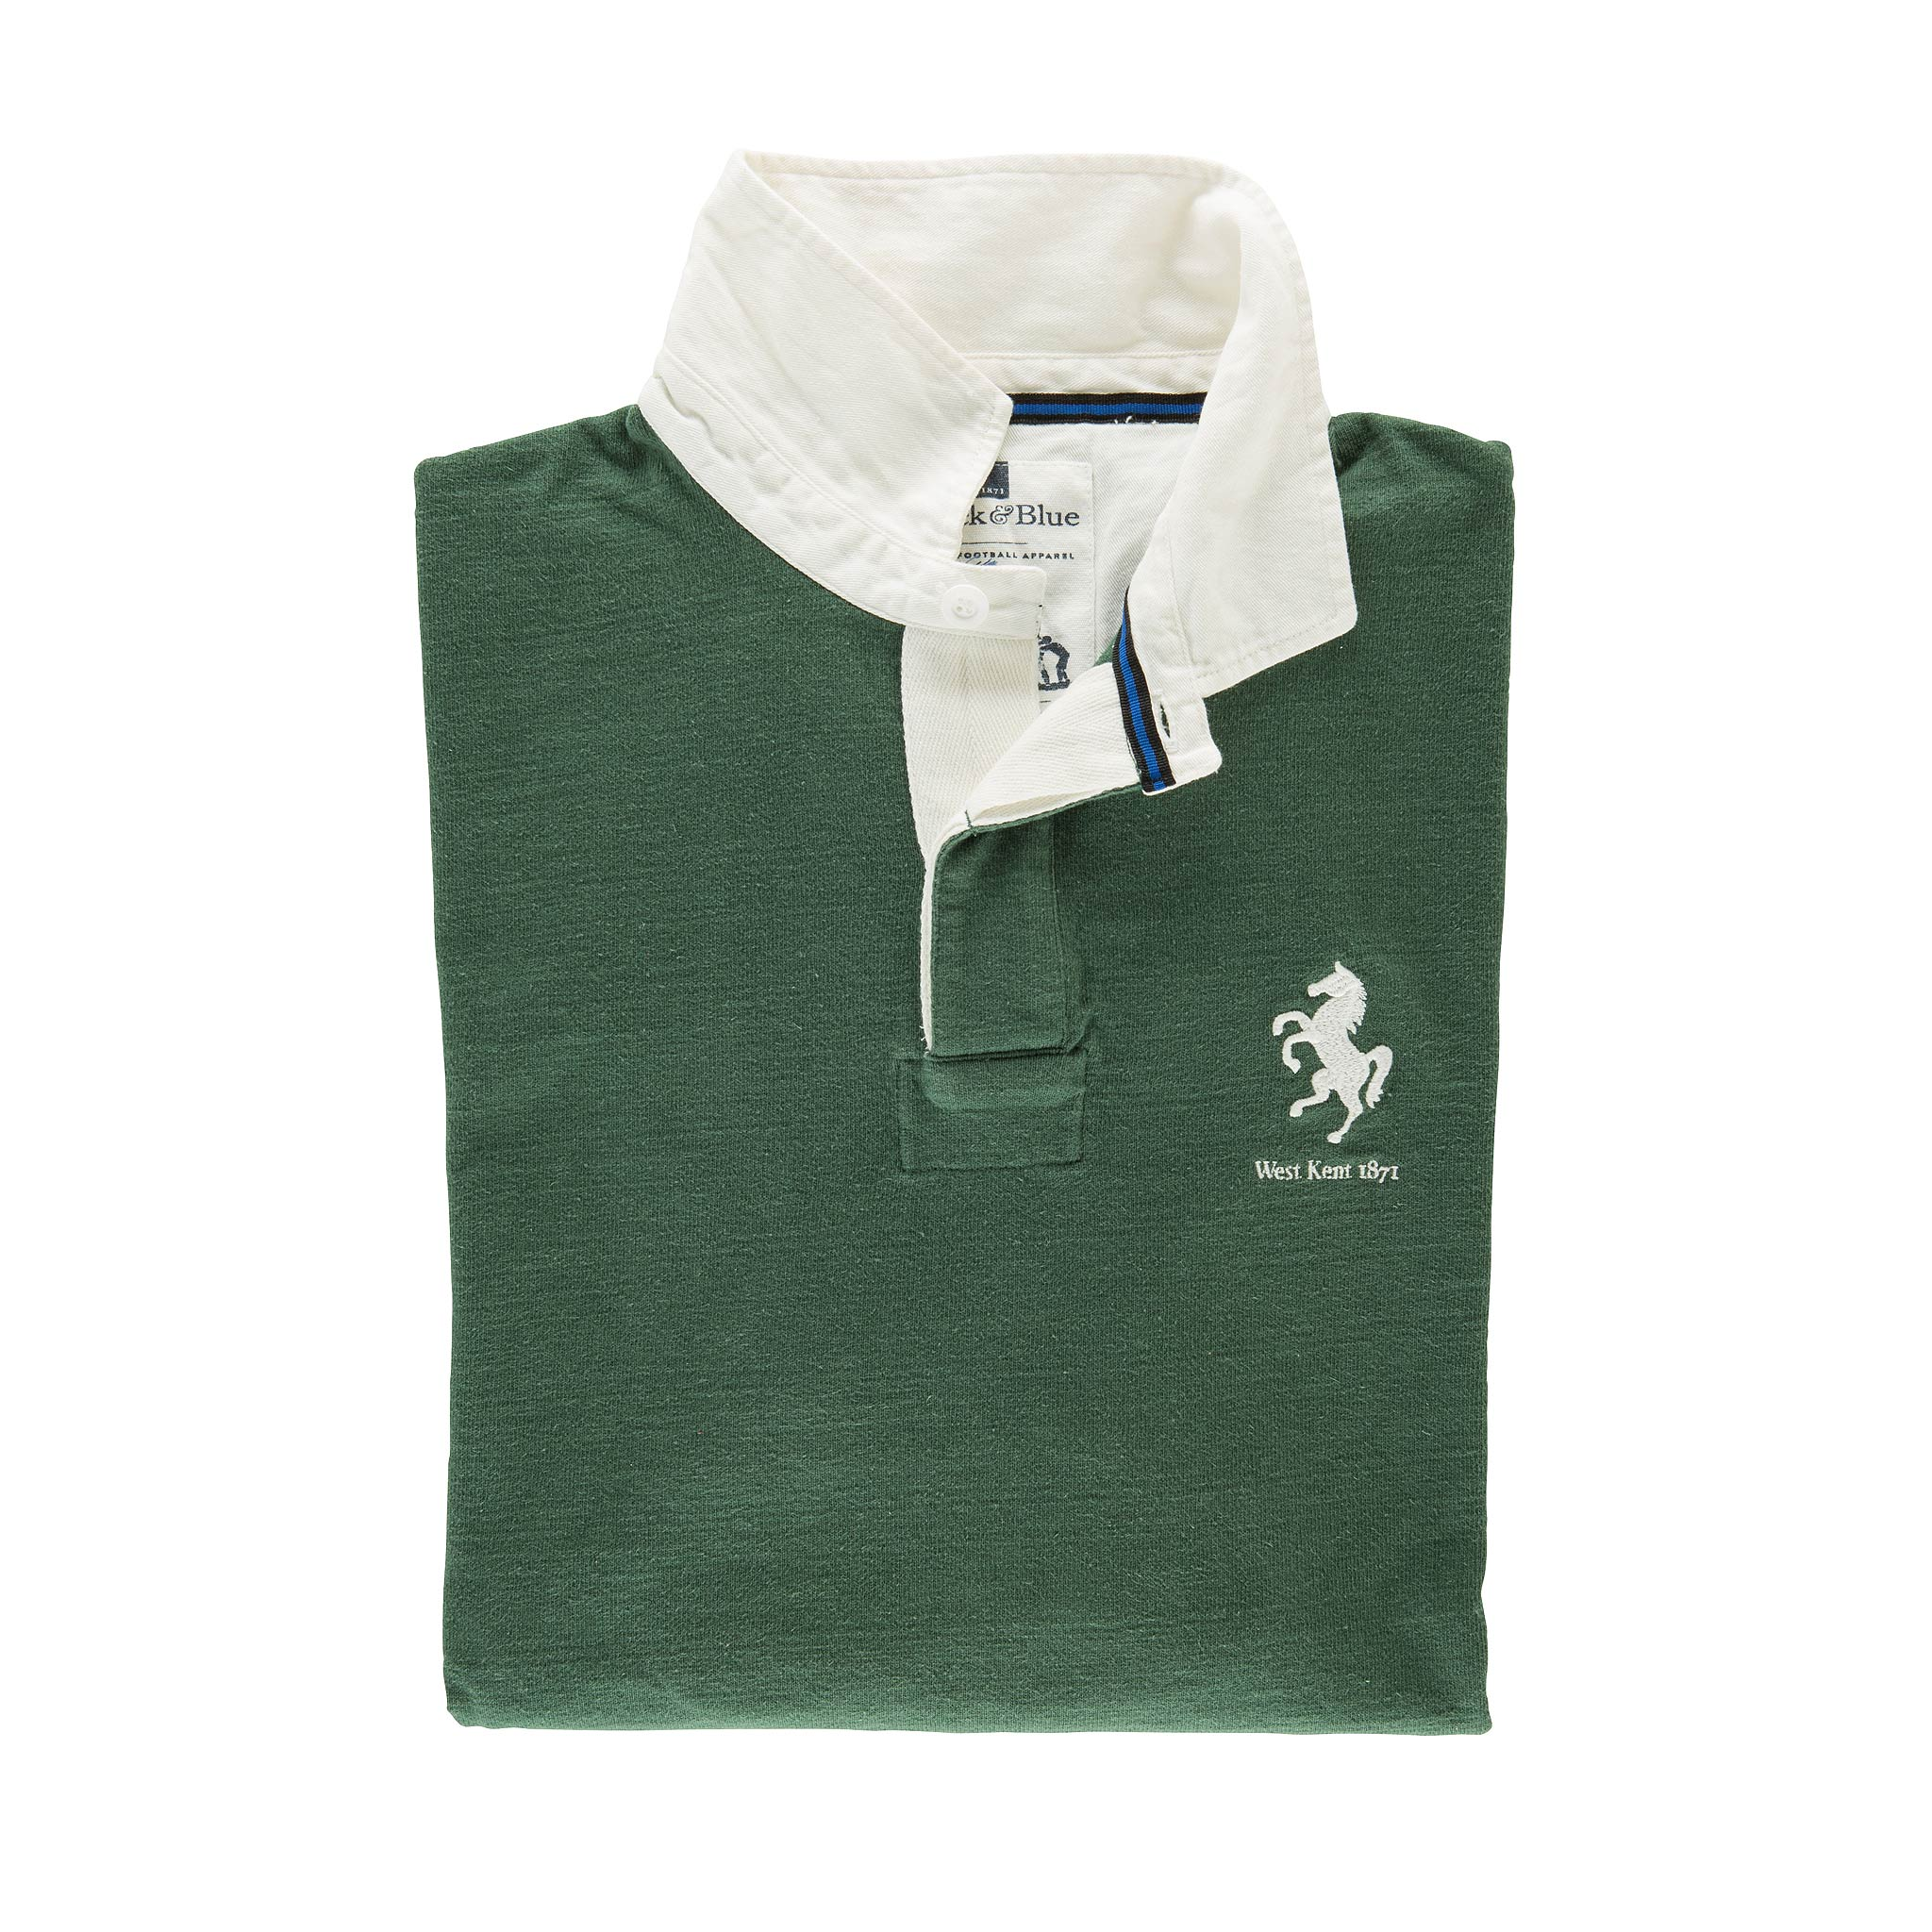 West Kent 1871 Rugby Shirt - folded